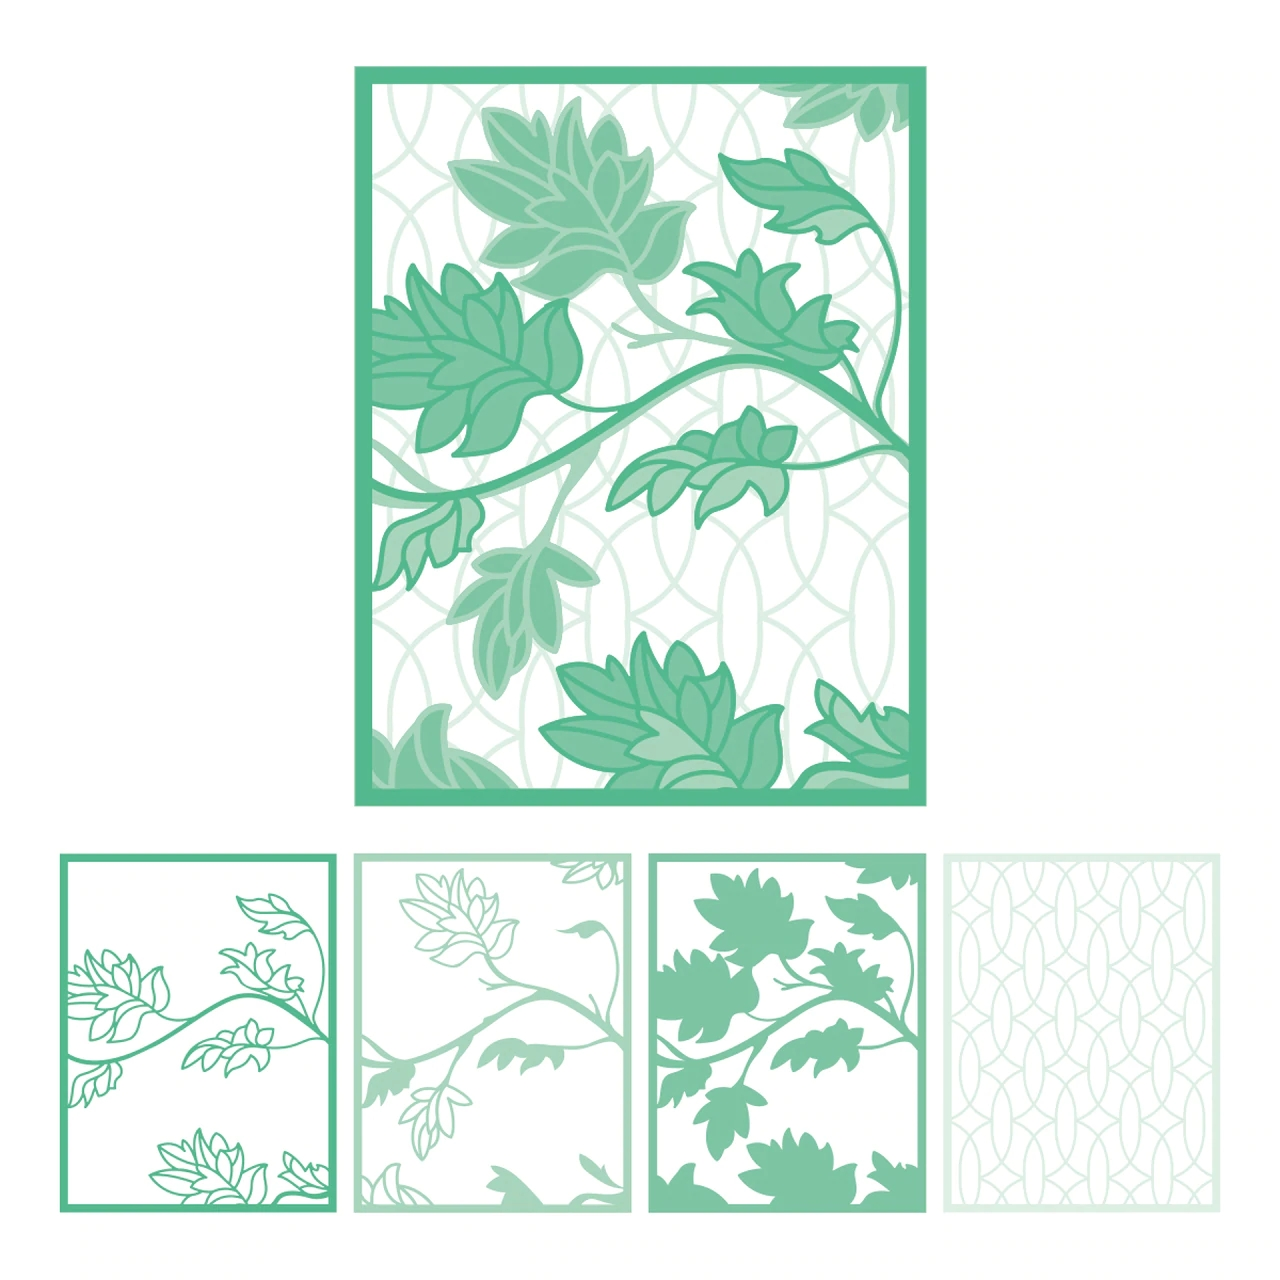 2019 DIY New Arrival Layered Metal Cutting Dies And Scrapbooking For Paper Making Flower Leaf Embossing Stamps Frame Card Craft